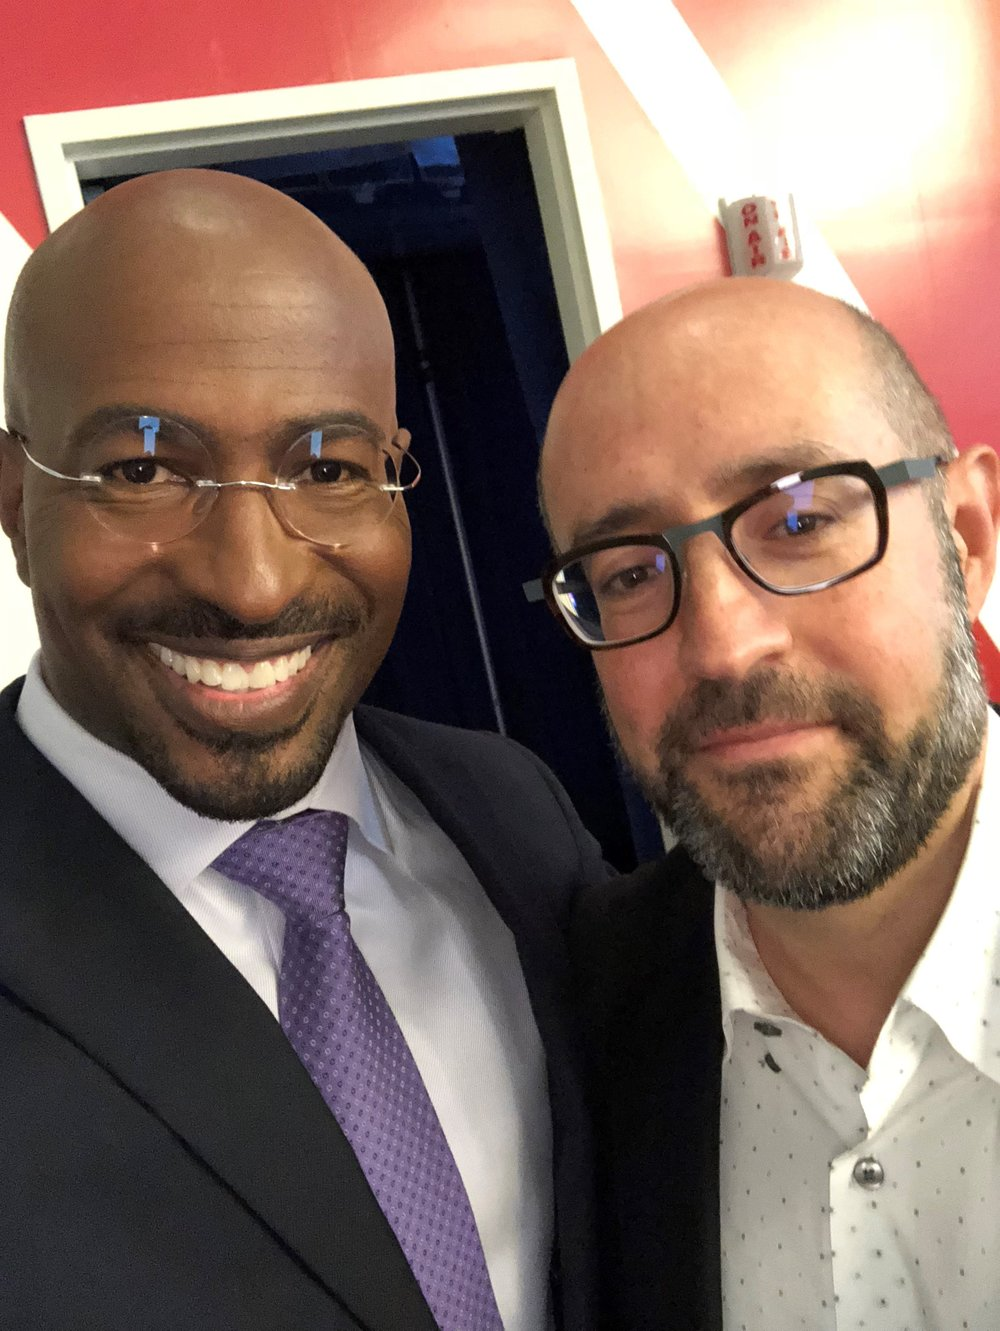 Jay Rosenzweig & Van Jones